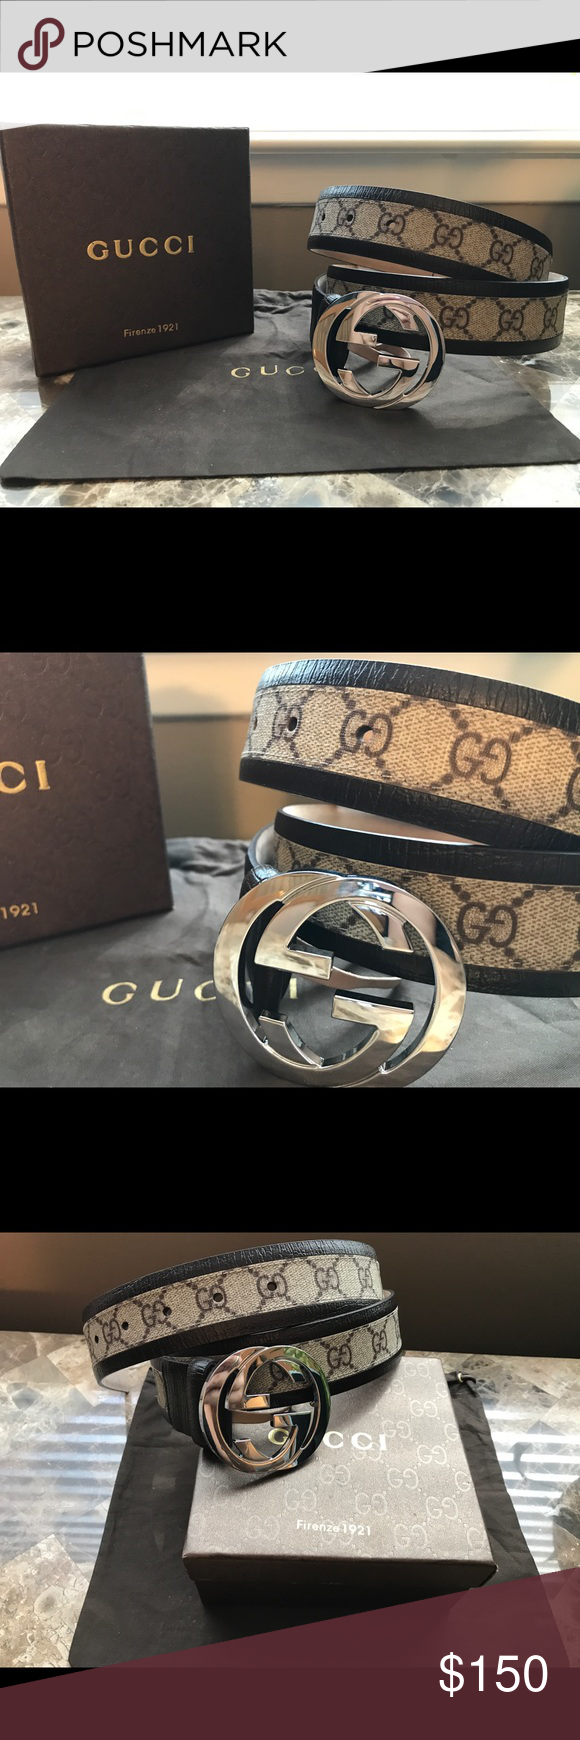 b10fb0d04716 🔑Authentic Men's Gucci Belt Brown Trim Authentic Gucci Belt All sizes from  28-44 available Ships with belt, box, dust bag and tags!